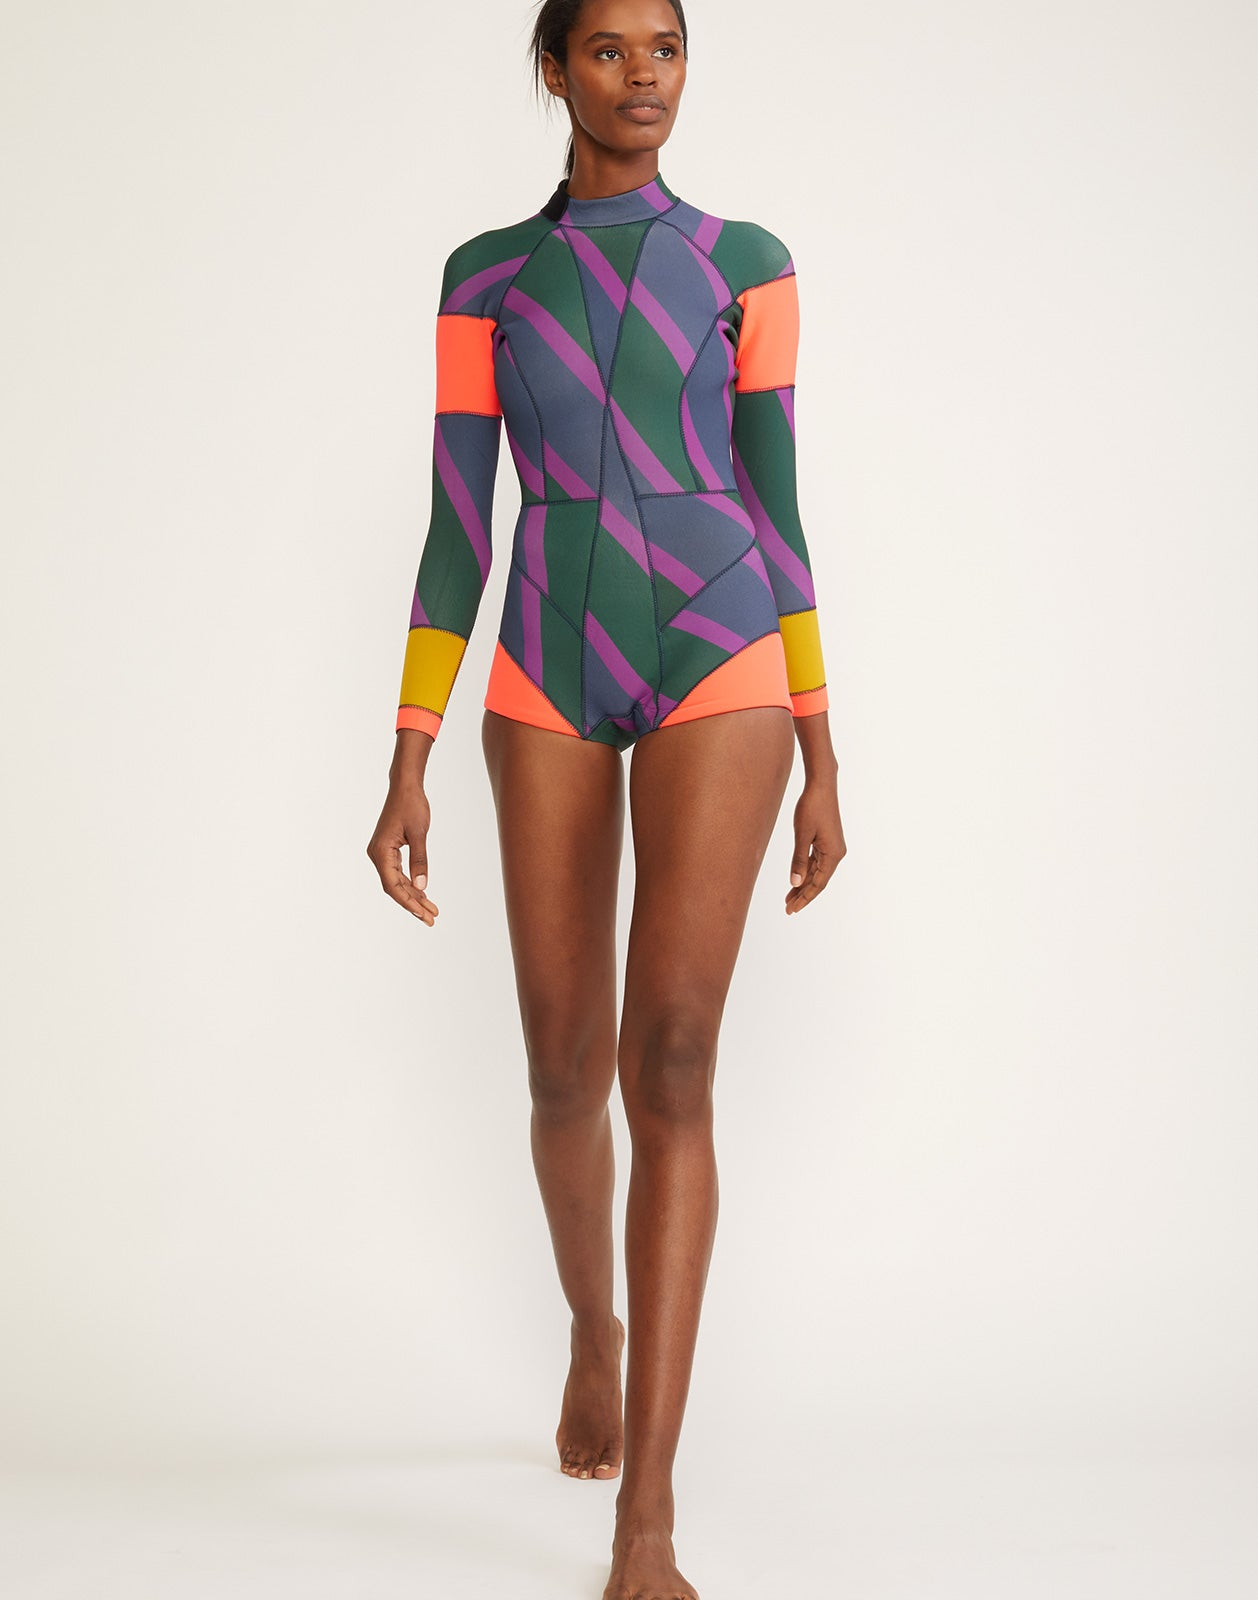 Full front view of the 2mm Neoprene wetsuit with multi color zig-zag stripes and bright colorblock panels.